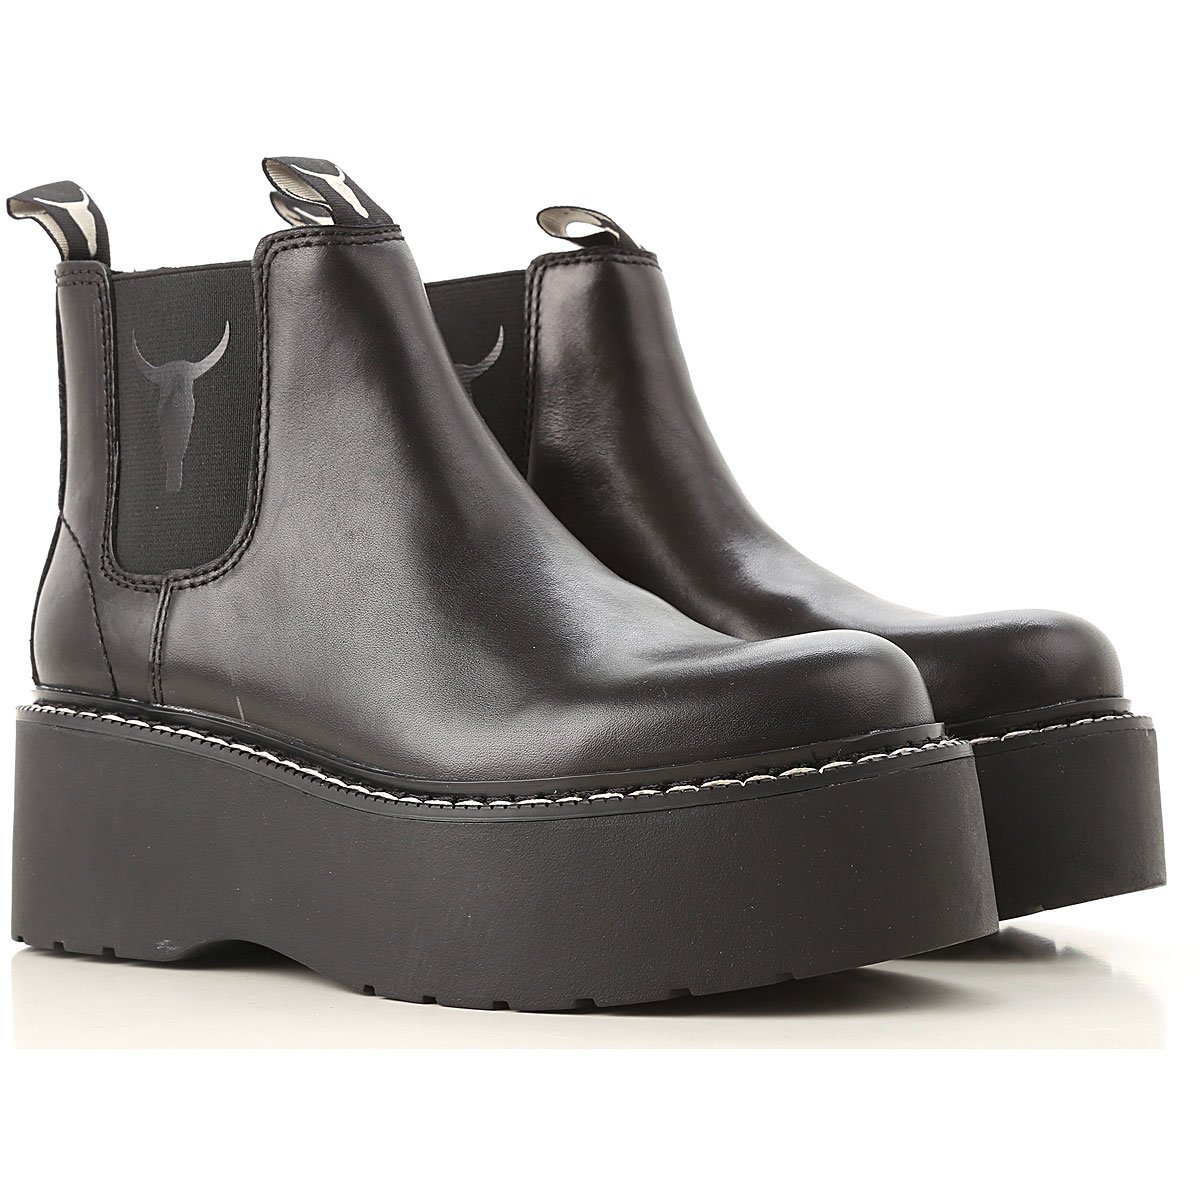 Image of Windsor Smith Boots for Women, Booties, Black, Leather, 2017, US 5 (EU 36) US 7 (EU 38) US 8 (EU 39) US 9 (EU 40) US 10.5 (EU 41)